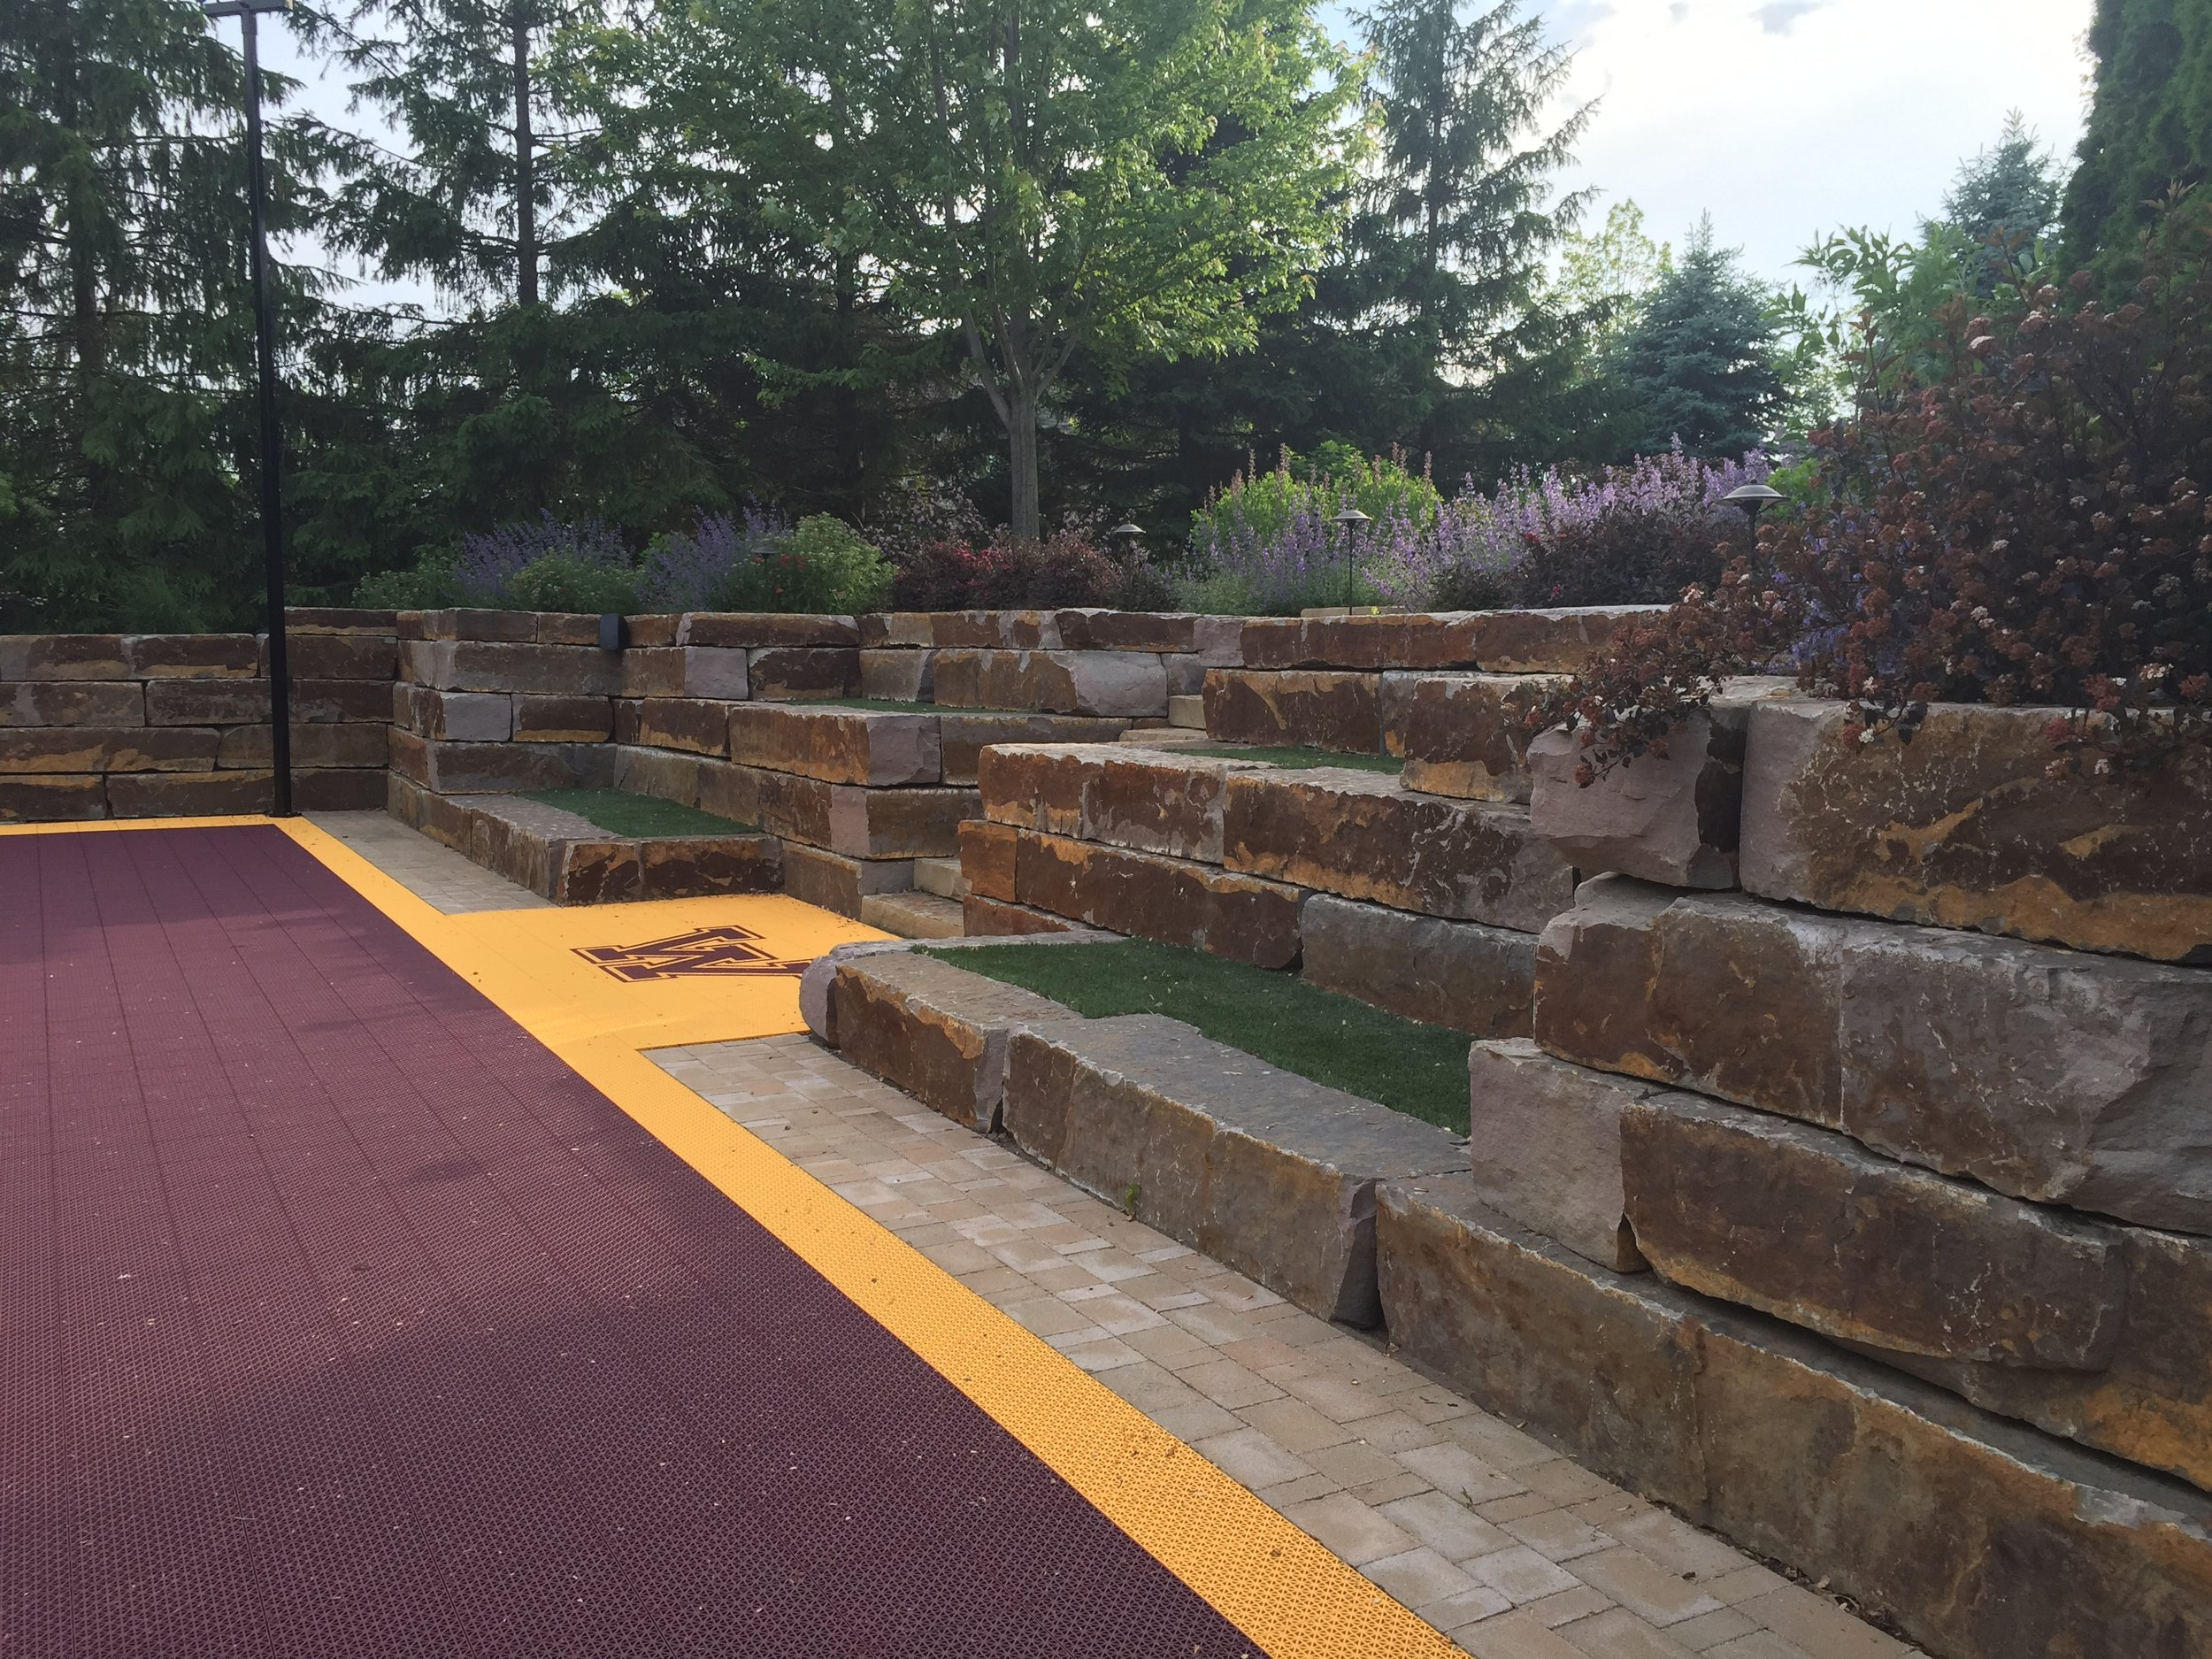 A maroon and gold court paired with the Gopher's logo supports the home-town team.